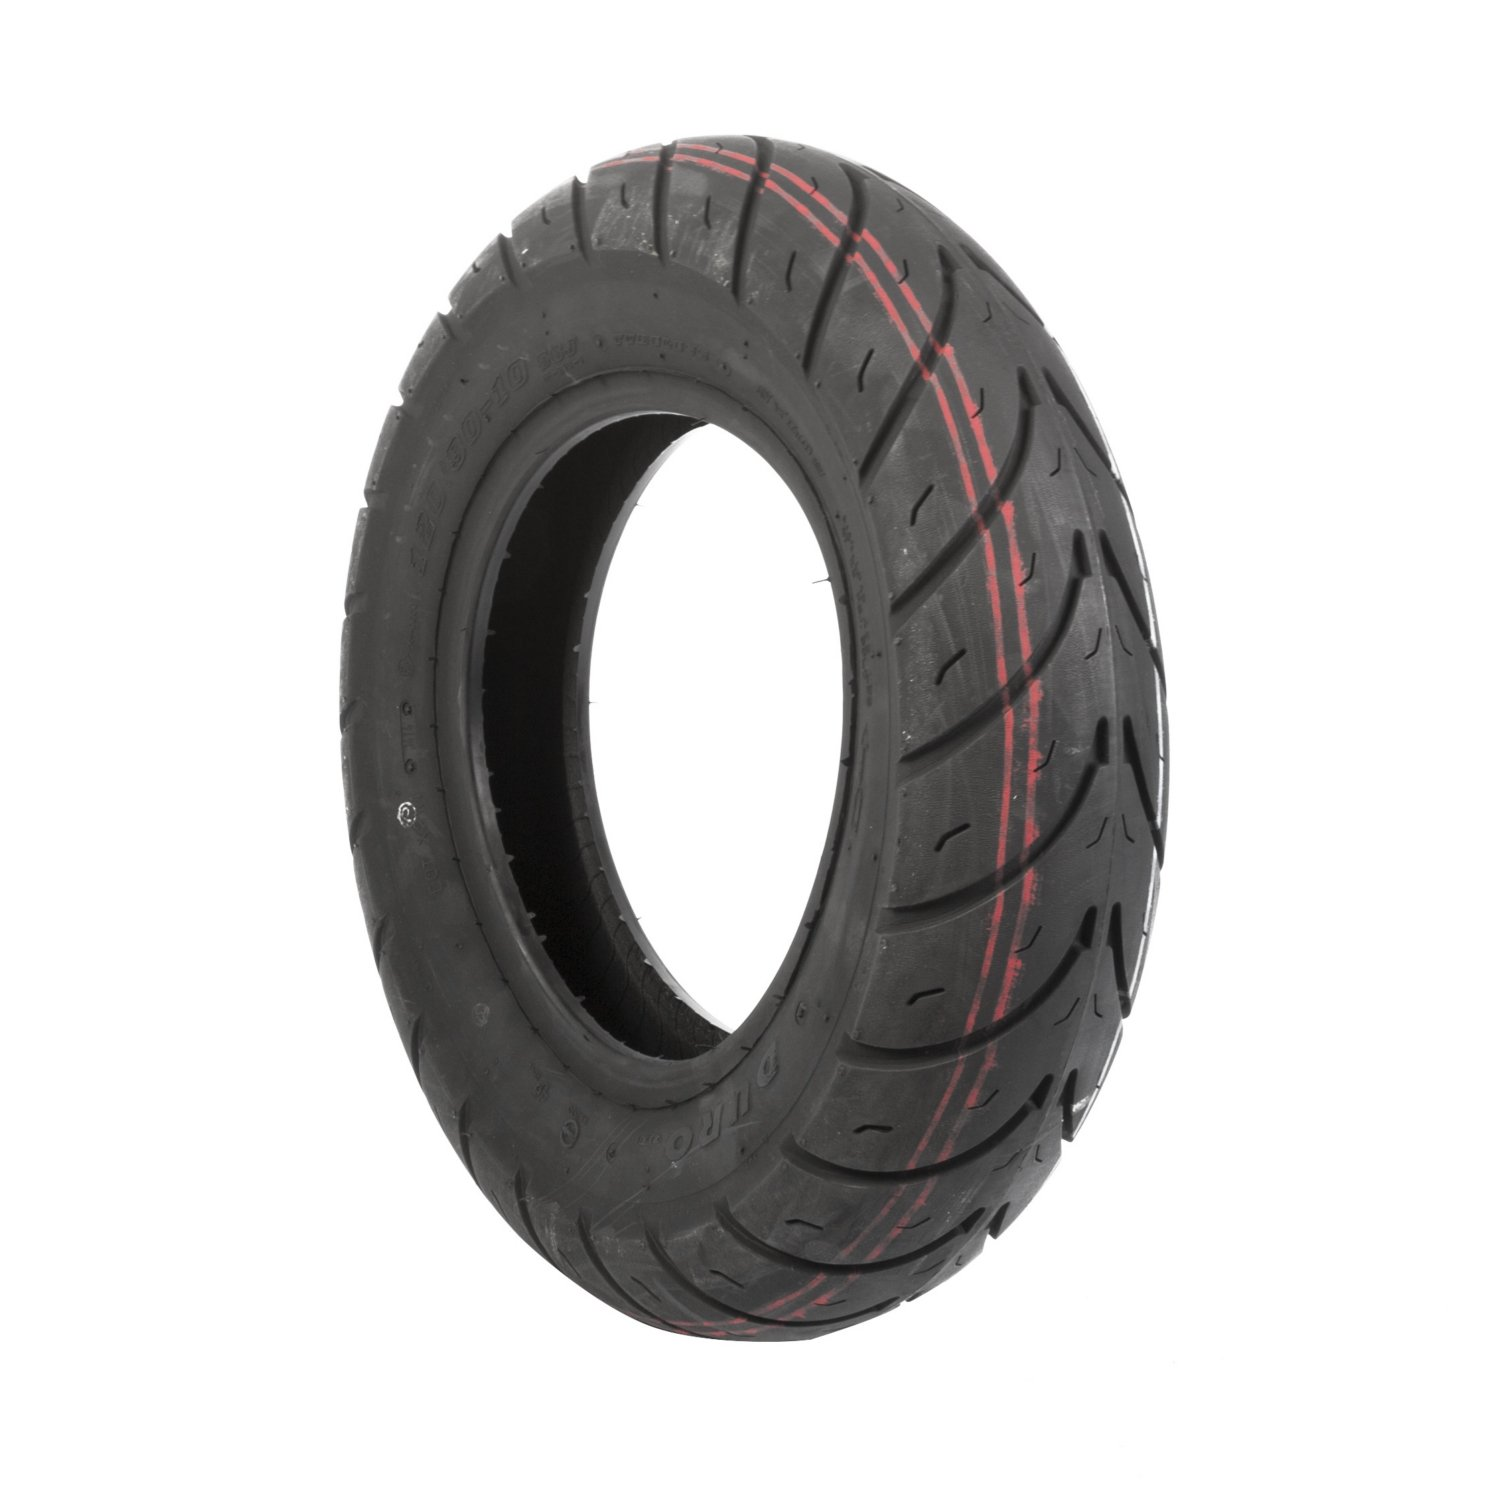 Duro HF290 Scooter Tire - Front/Rear - 130/90-10 , Position: Front/Rear, Tire Size: 130/90-10, Tire Type: Scooter/Moped, Rim Size: 10, Tire Ply: 4, Load Rating: 61, Speed Rating: J 25-29010-130